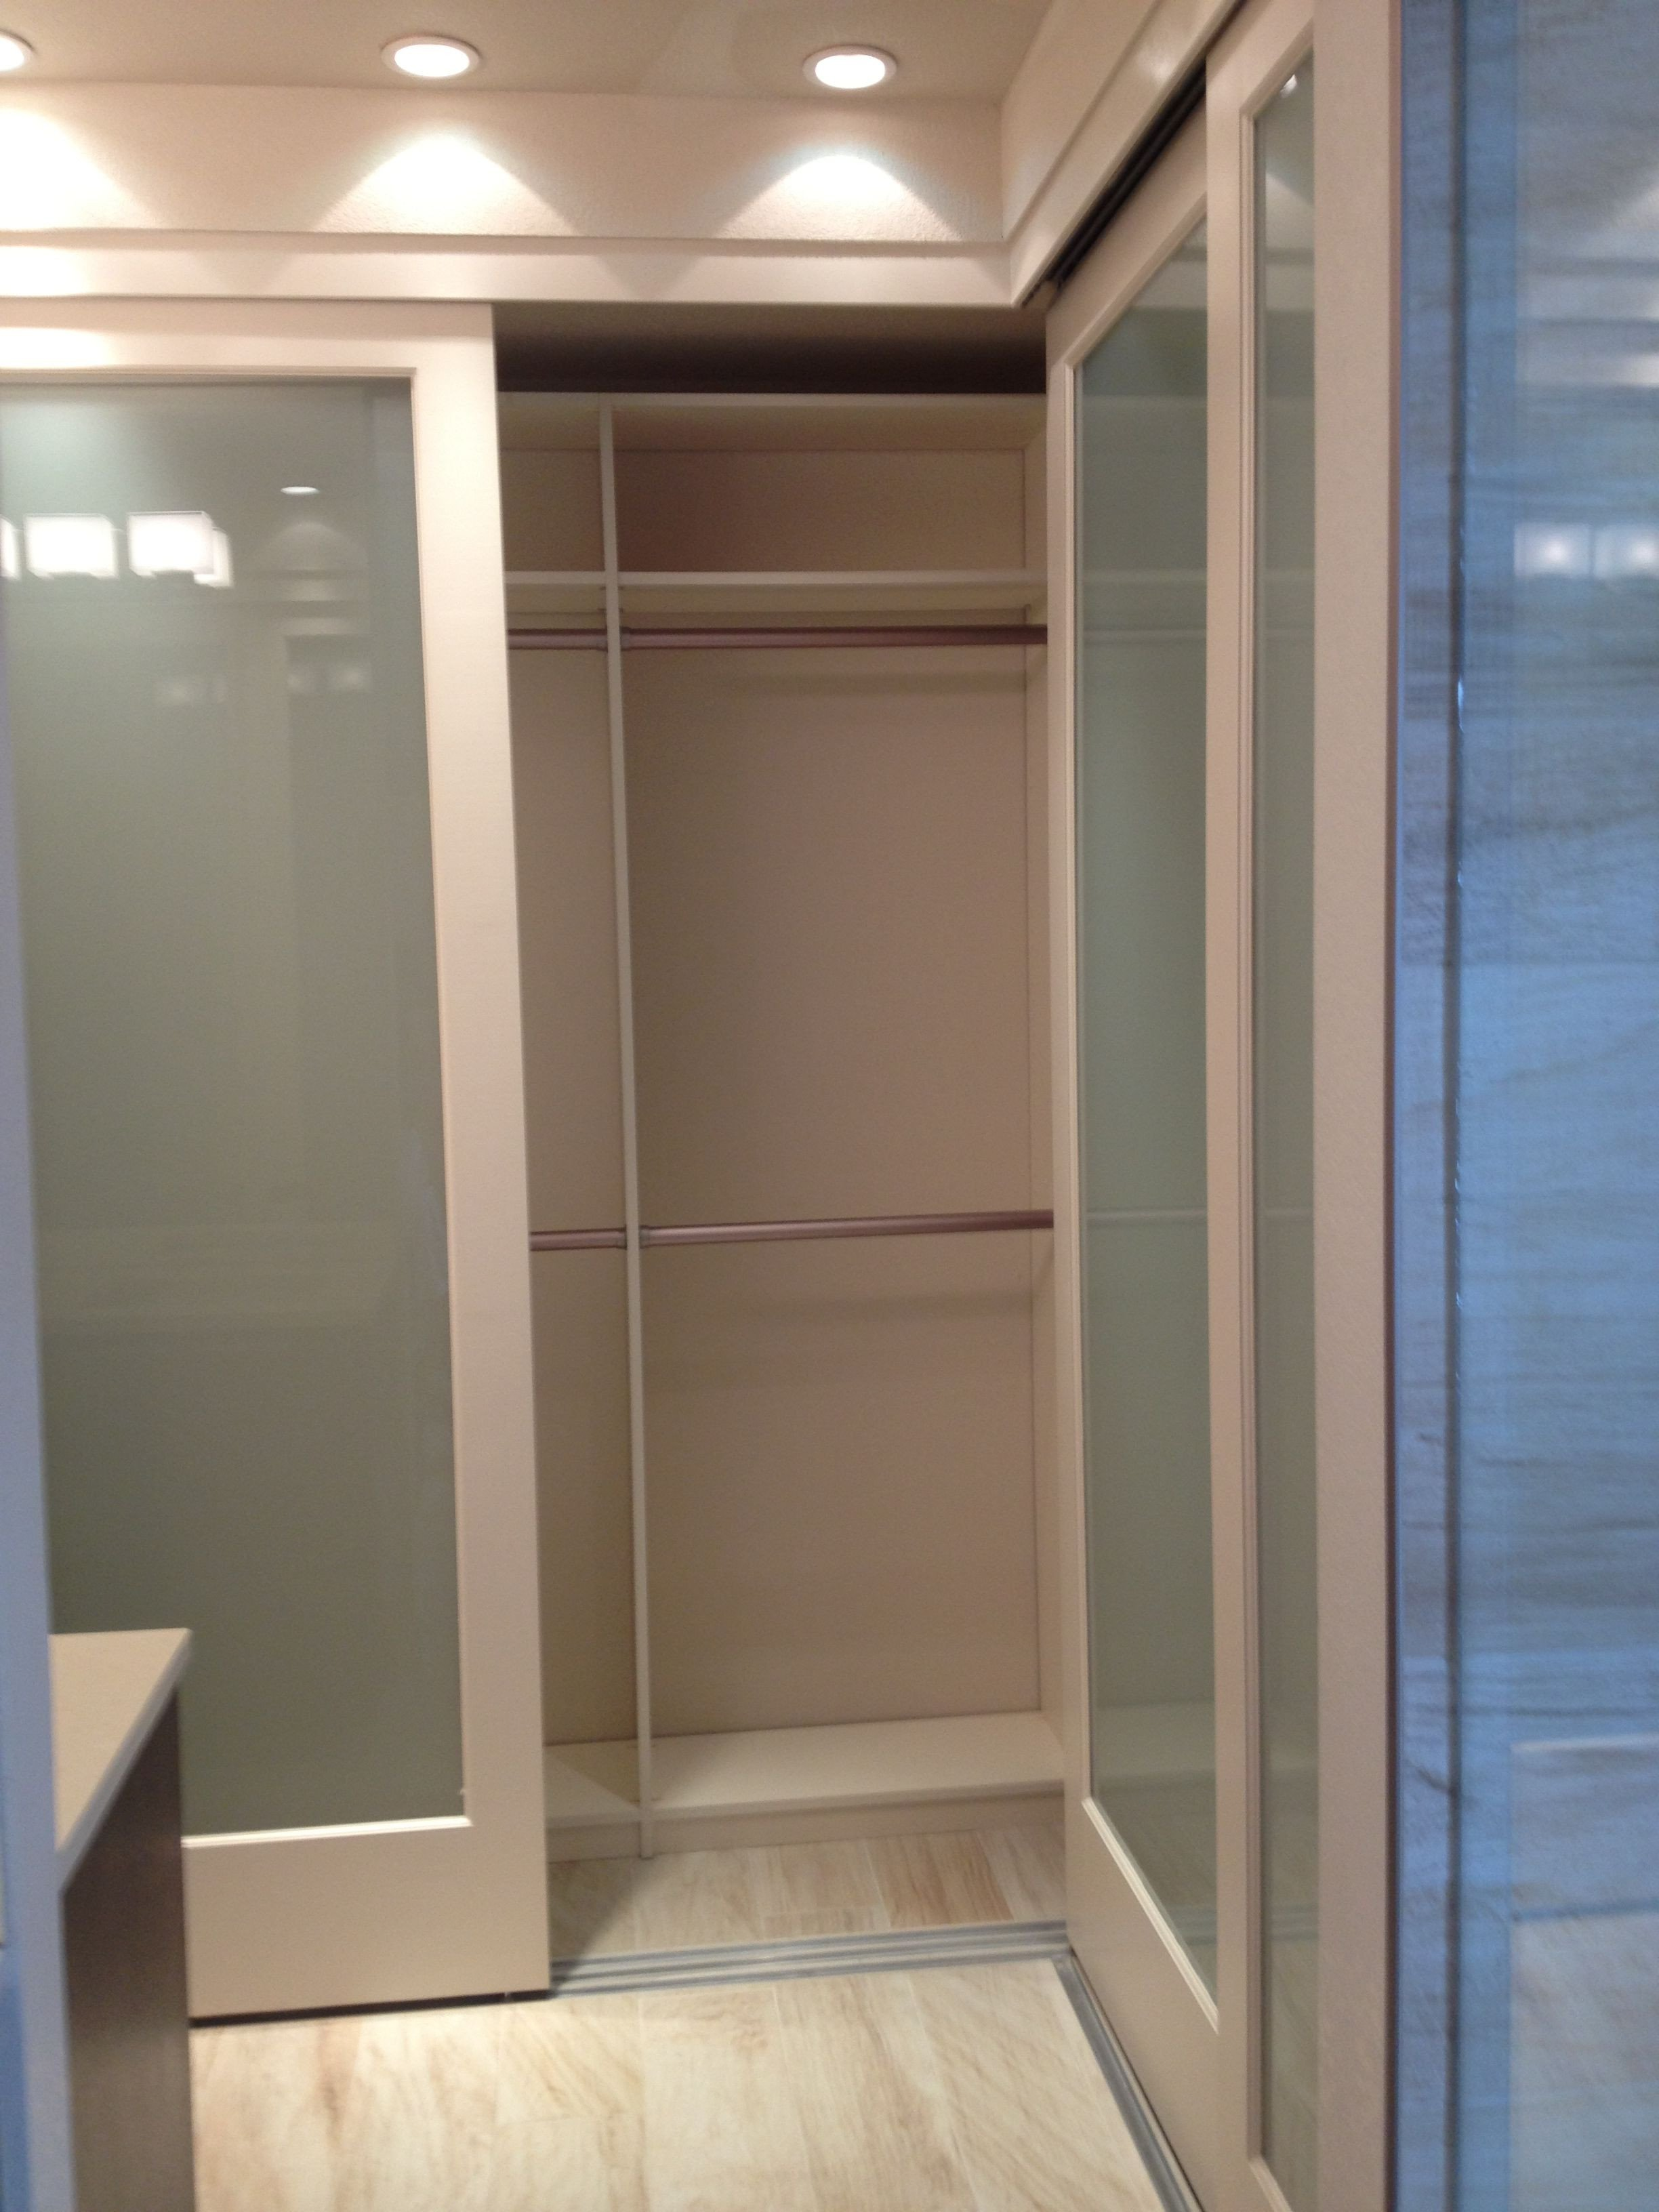 Sliding Doors for Bedroom Fresh Corner Sliding Closet Doors